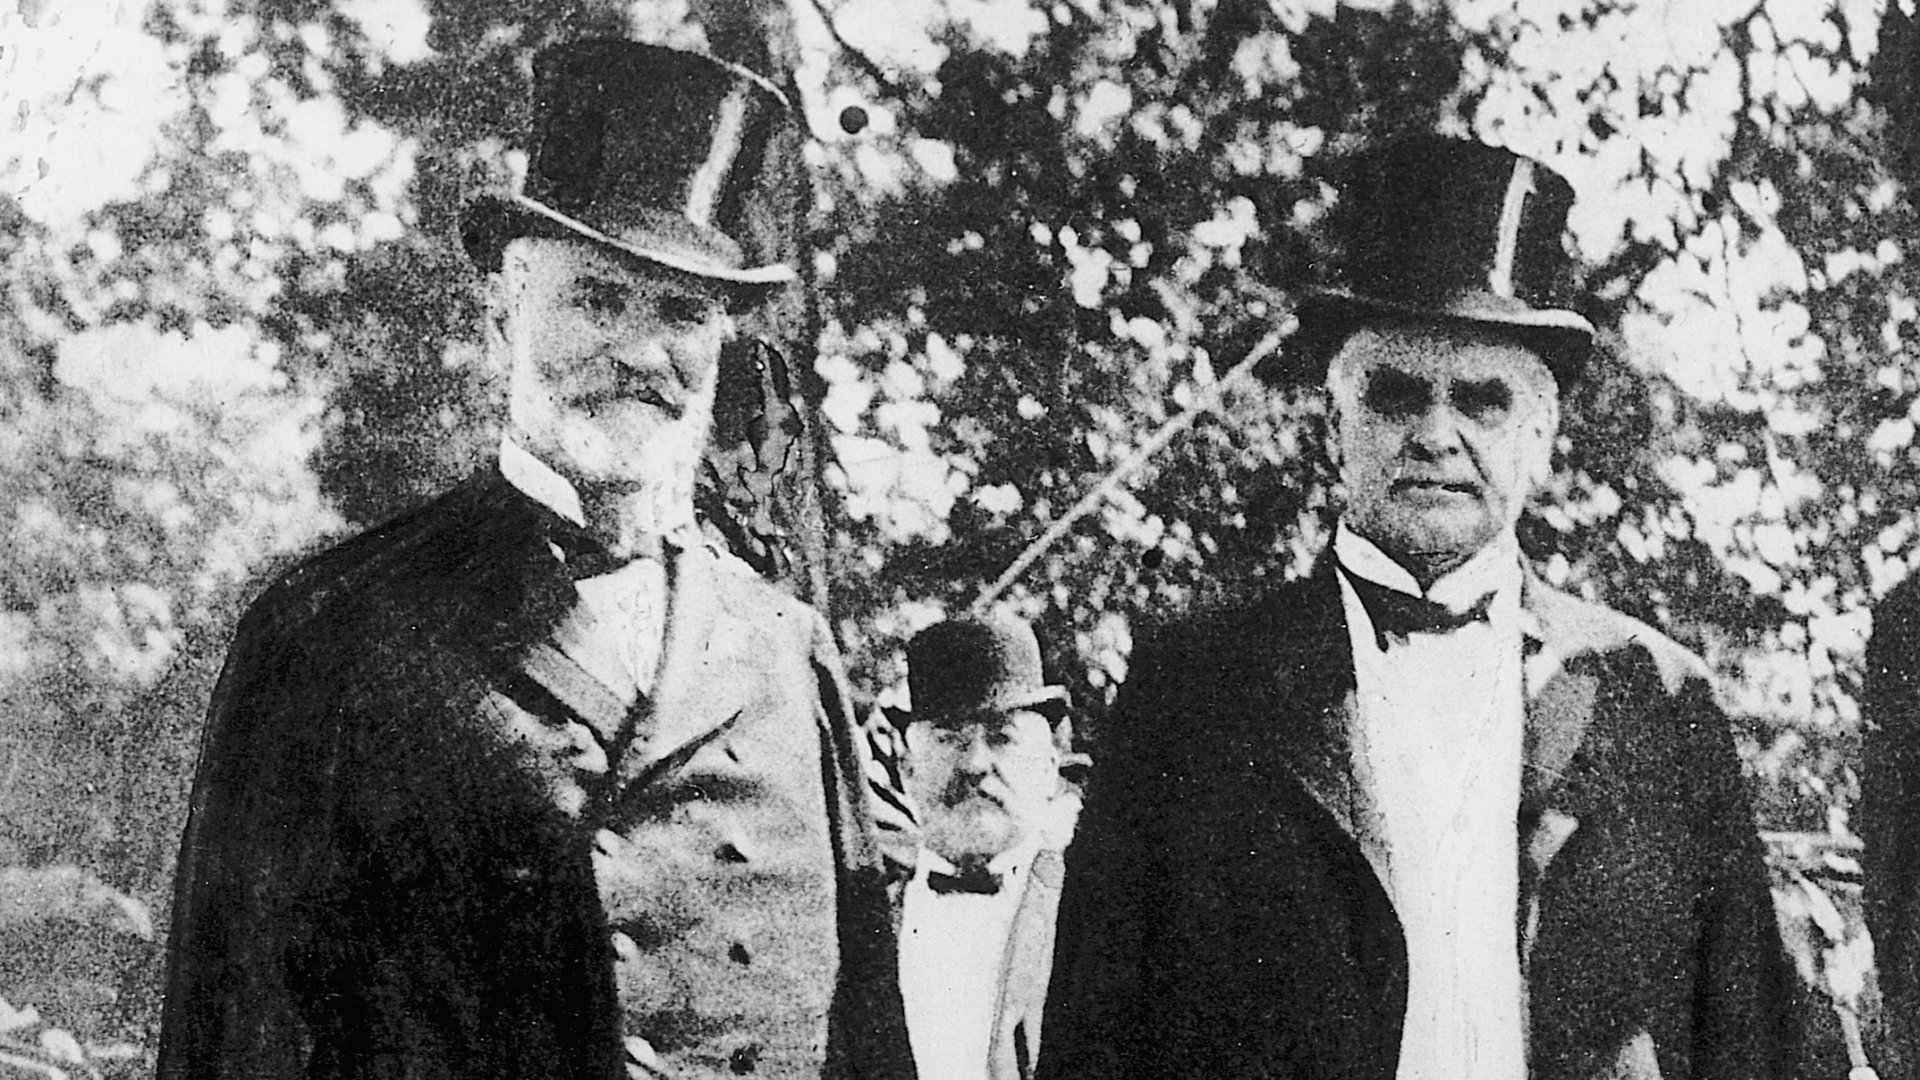 James Wilson, Secretary of Agriculture, with President William McKinley, 1901. (Credit: Bettmann Archives/Getty Images)